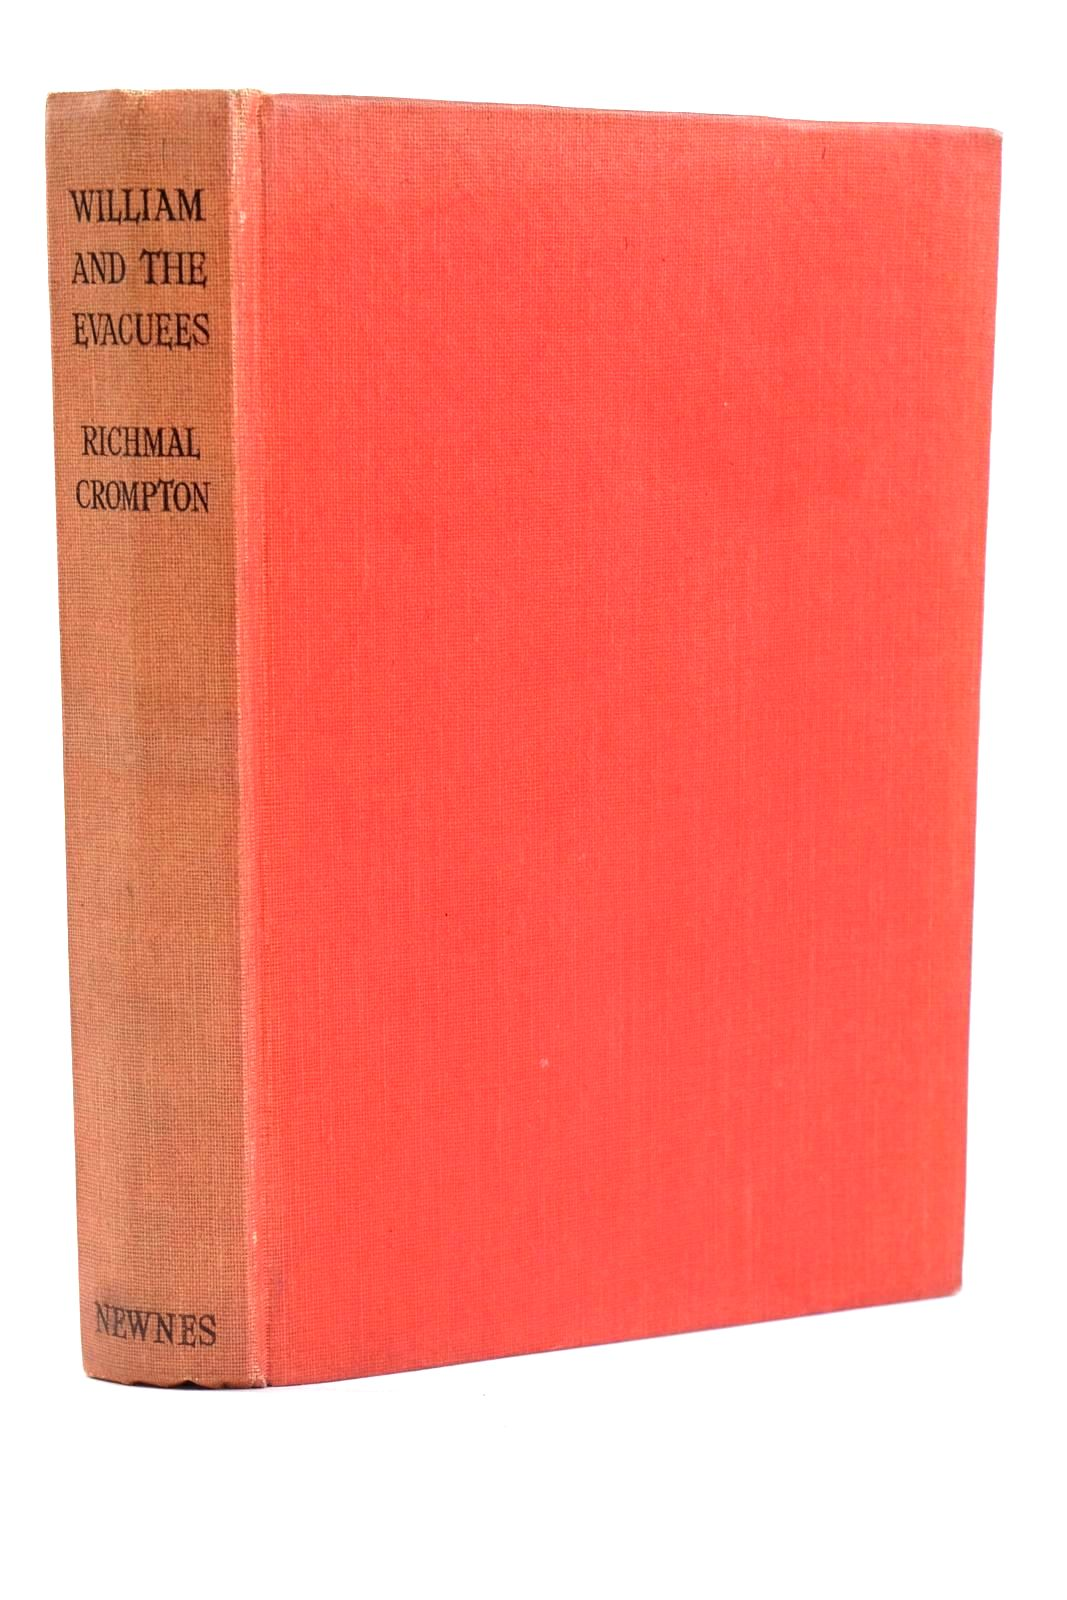 Photo of WILLIAM AND THE EVACUEES written by Crompton, Richmal illustrated by Henry, Thomas published by George Newnes Ltd. (STOCK CODE: 1319675)  for sale by Stella & Rose's Books